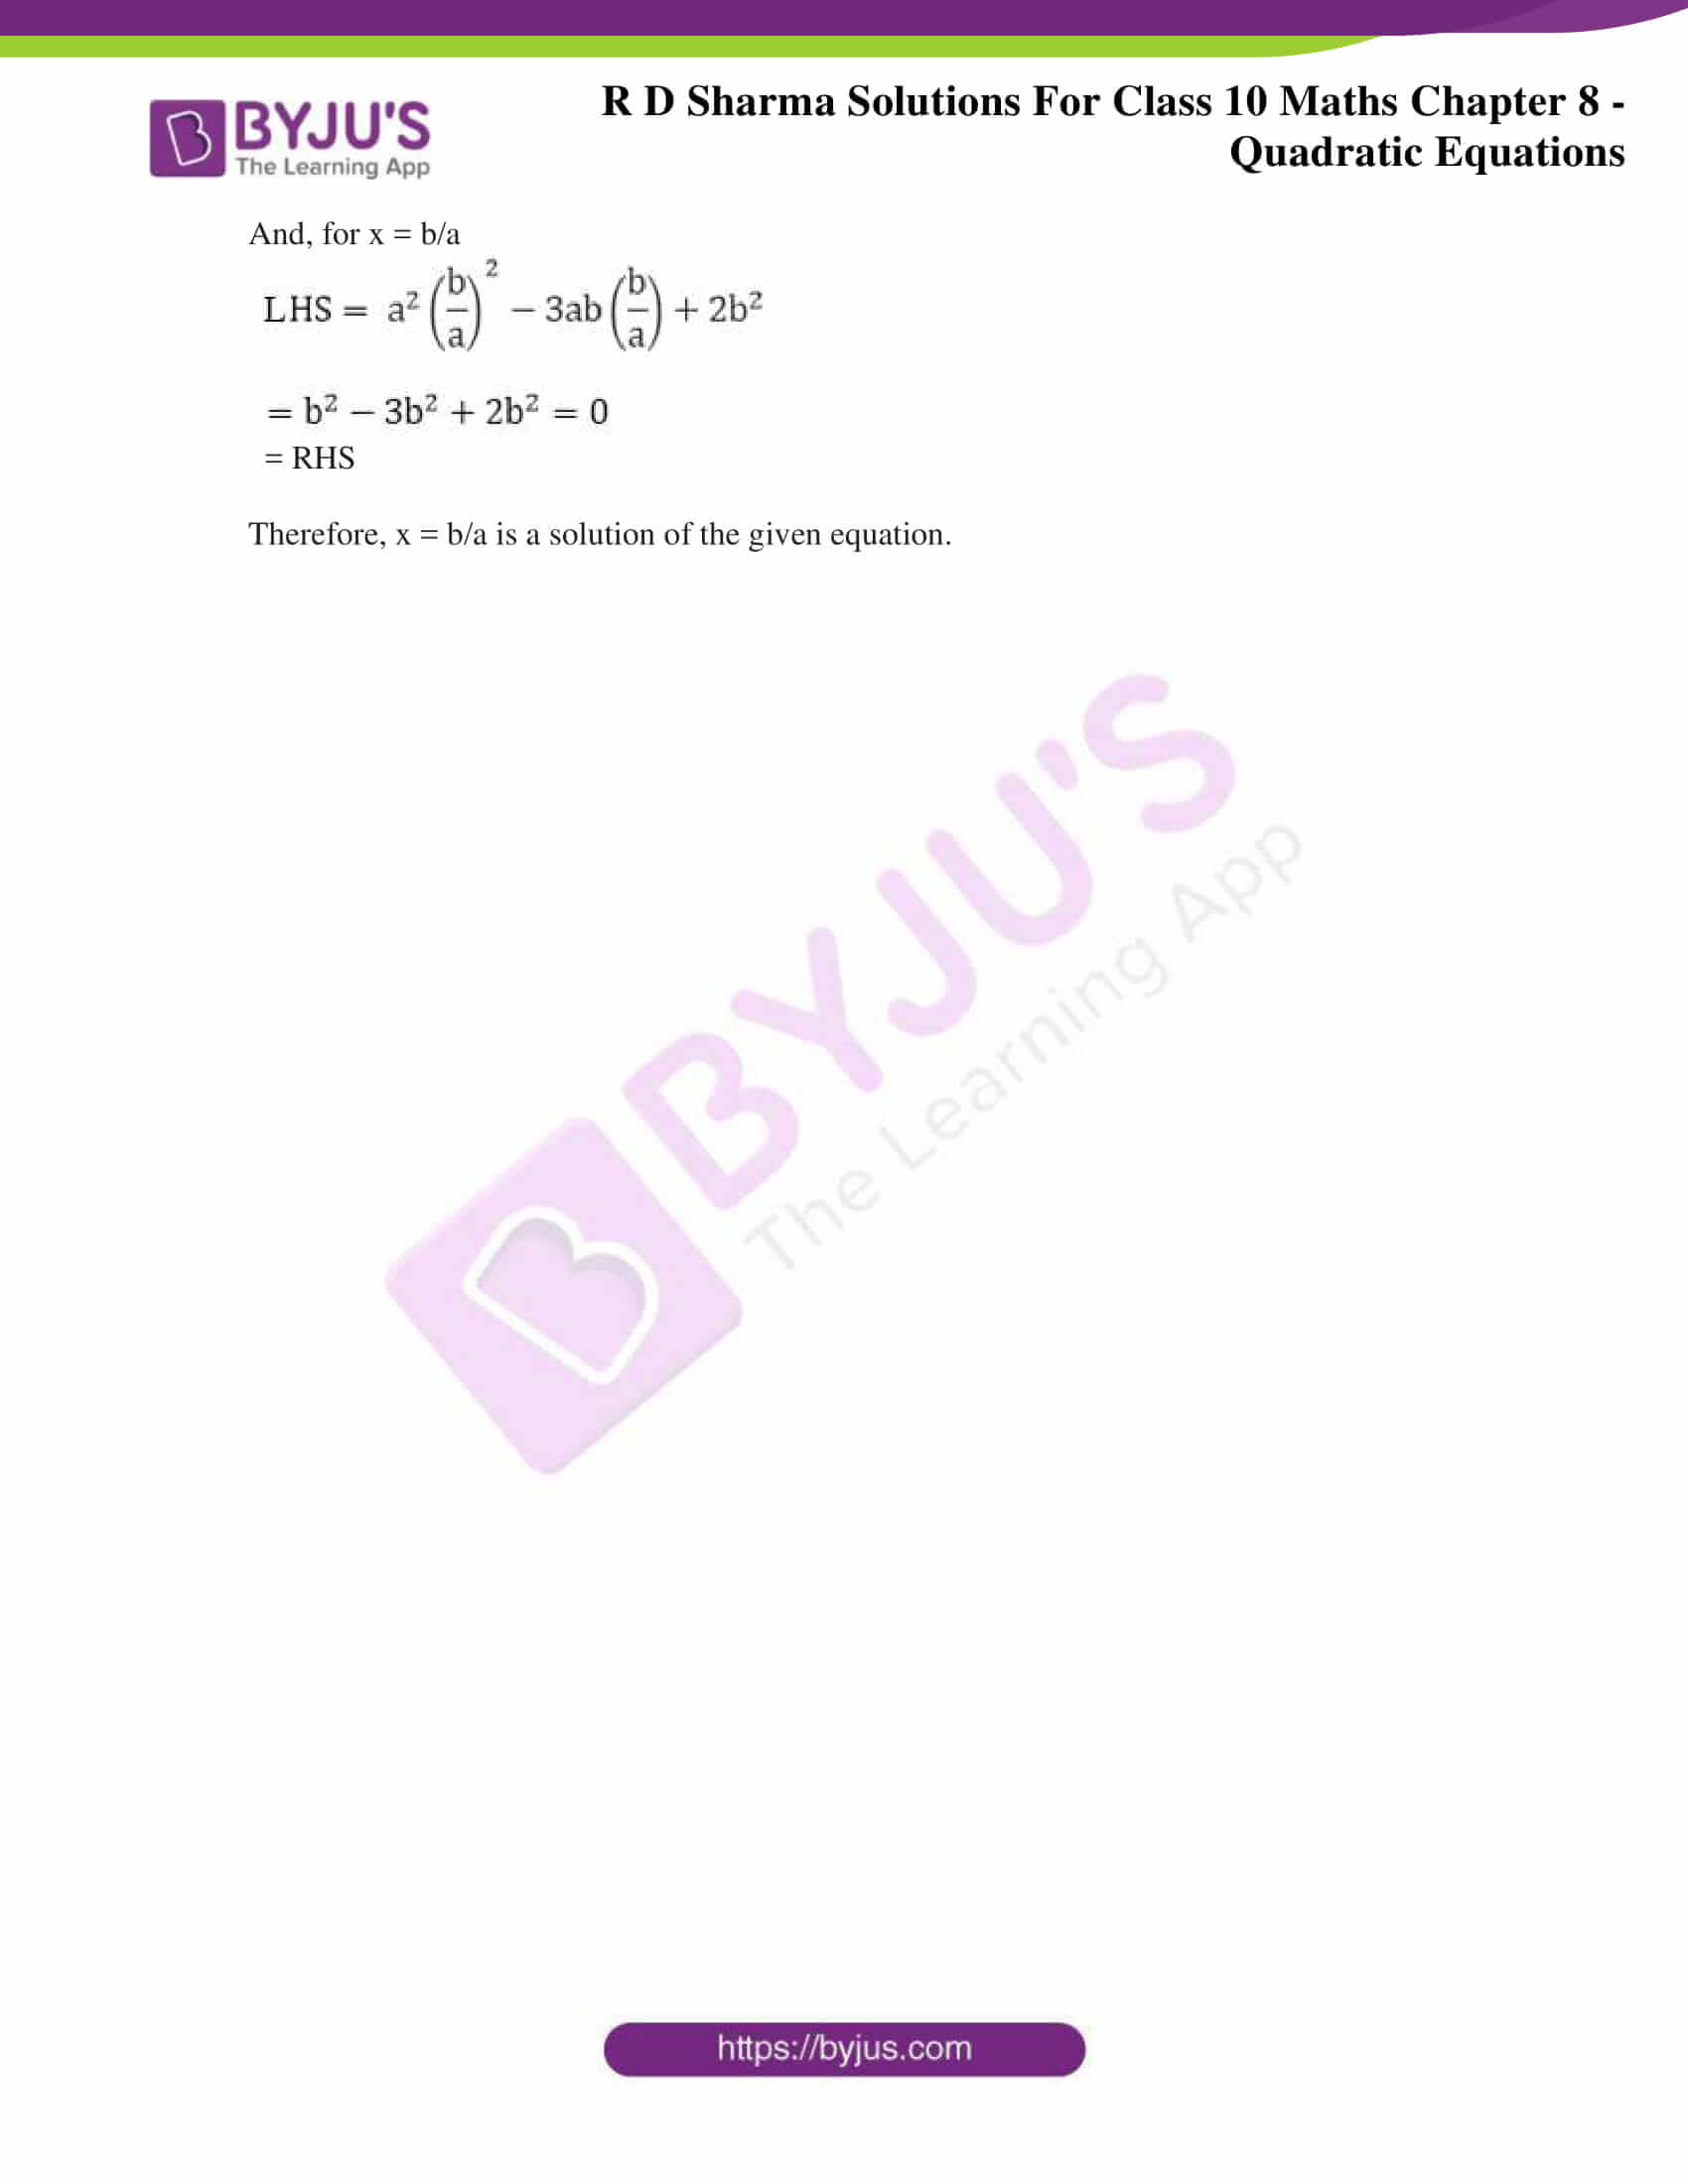 RD Sharma Solutions for Class 10 Chapter 8 Quadratic Equations Exercise 8.1 07